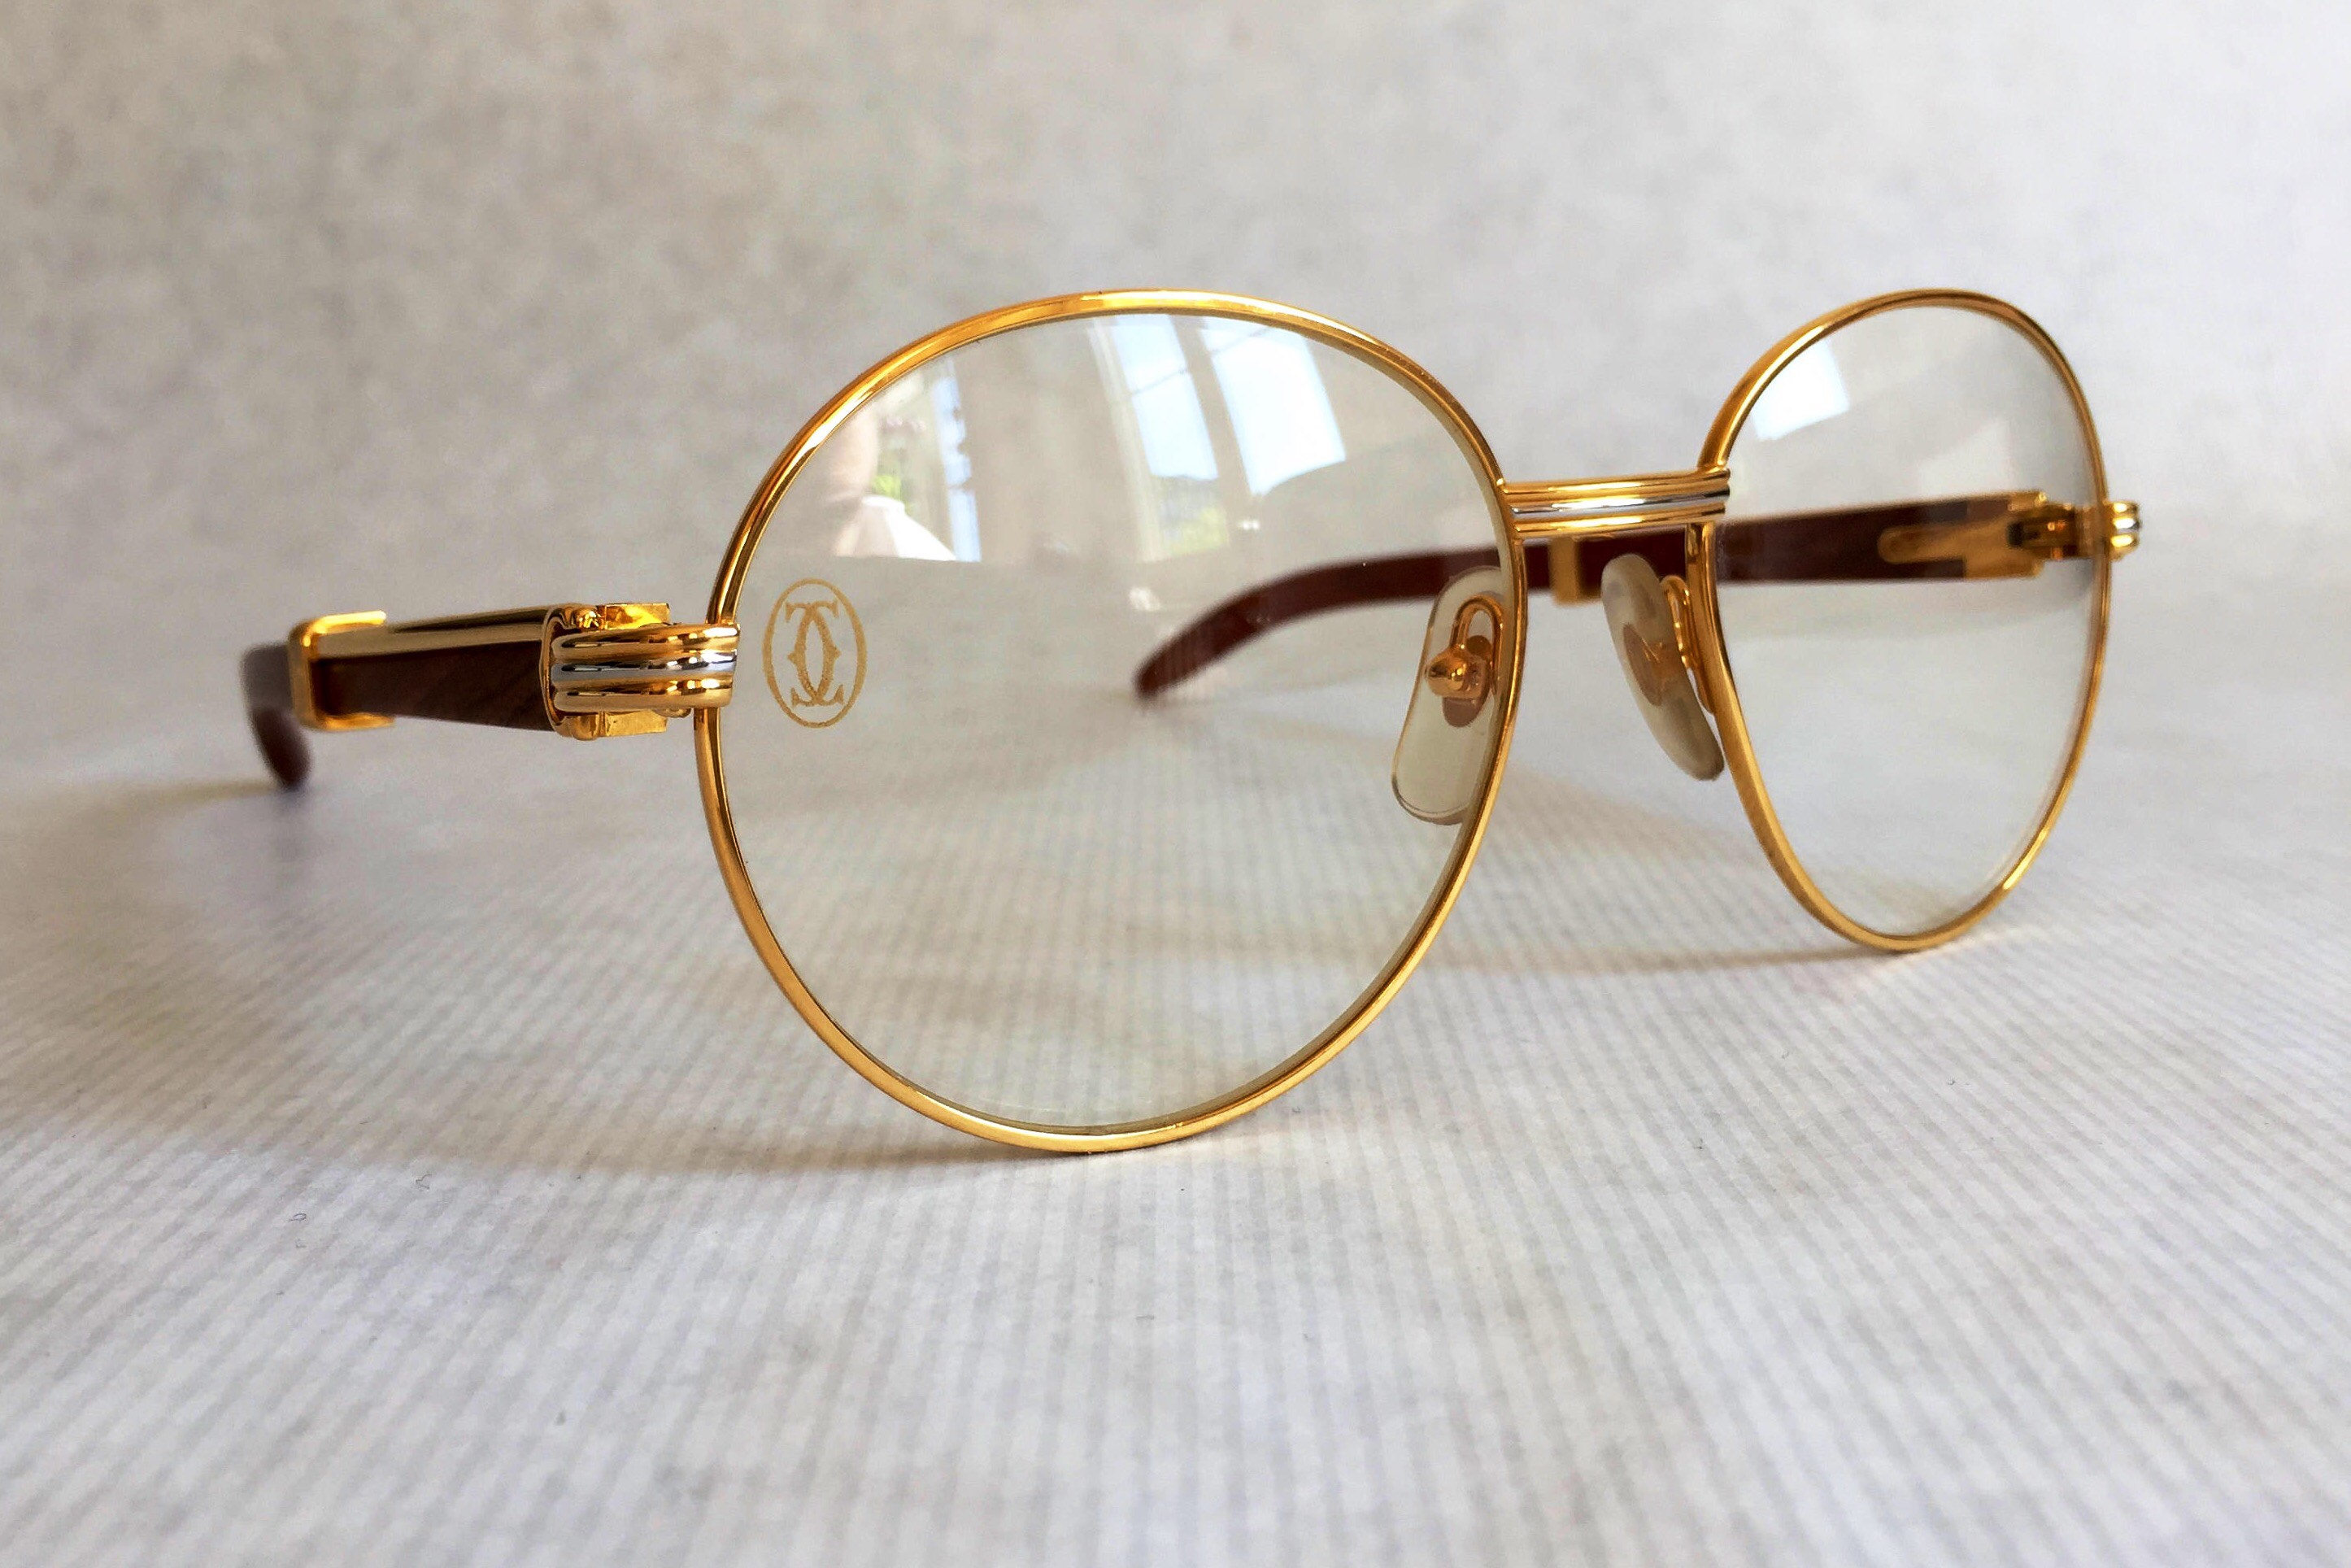 2a03494aa48 Cartier Bagatelle Vintage Glasses Large 18kt Gold Plated New Old Stock Full  Set